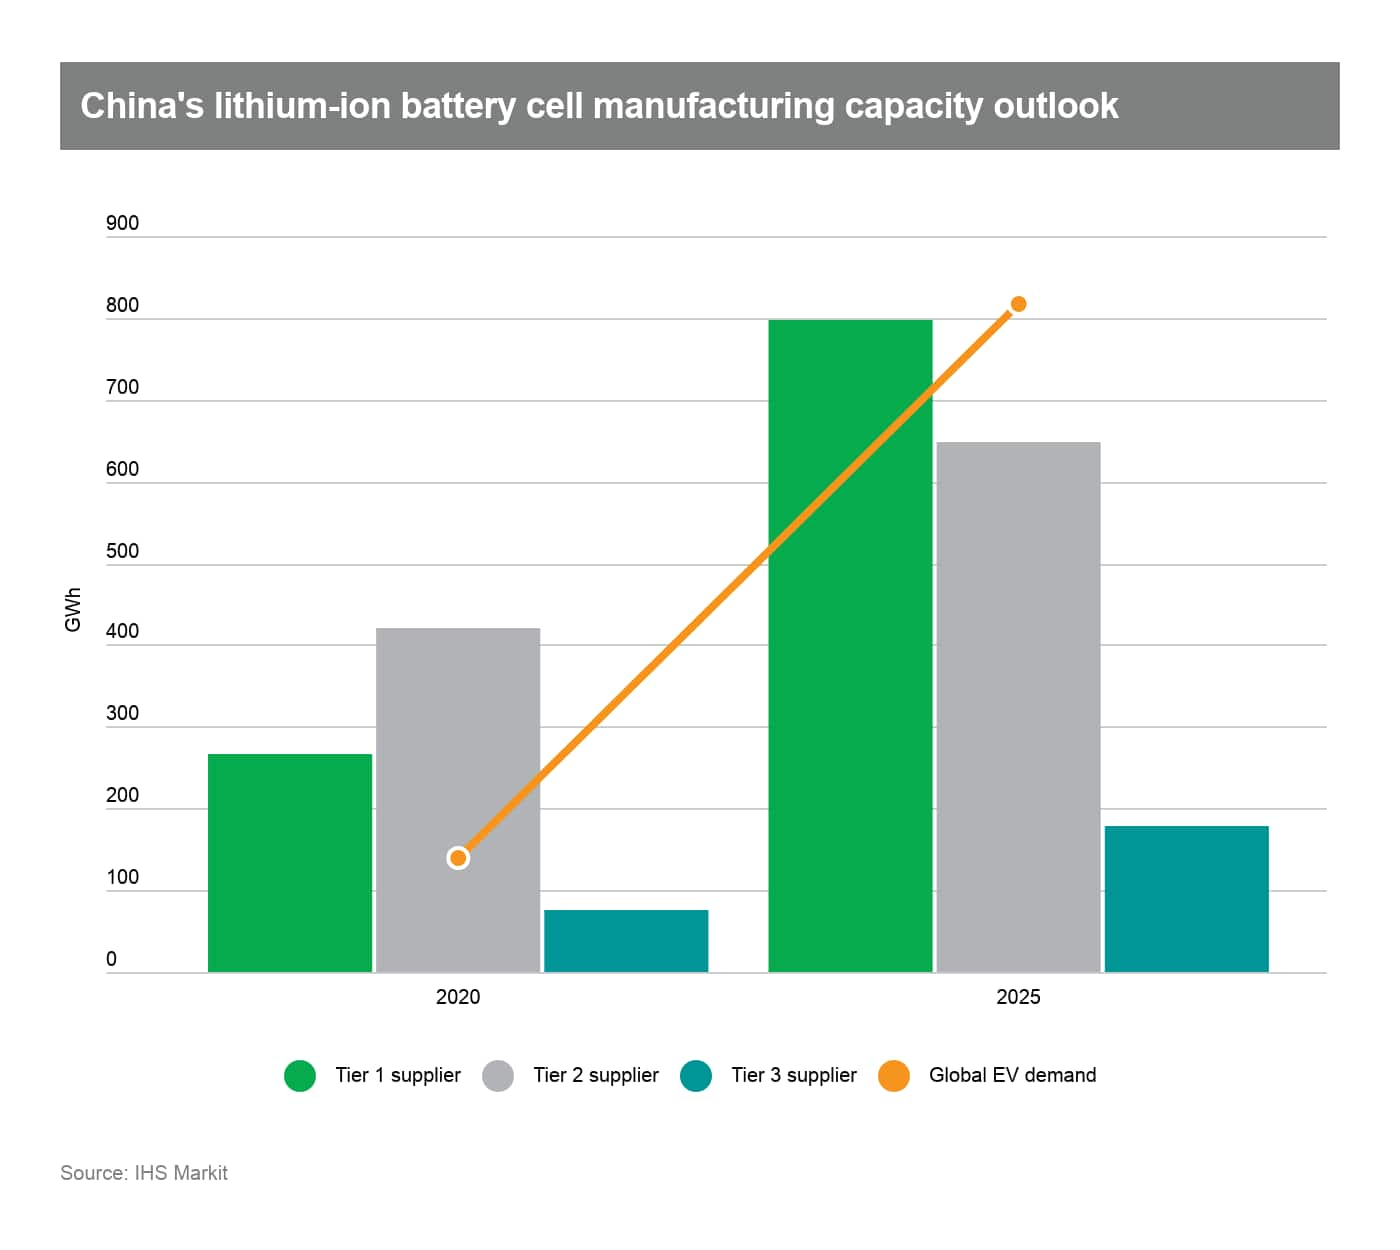 China's lithium-ion battery cell manufacturing capacity outlook